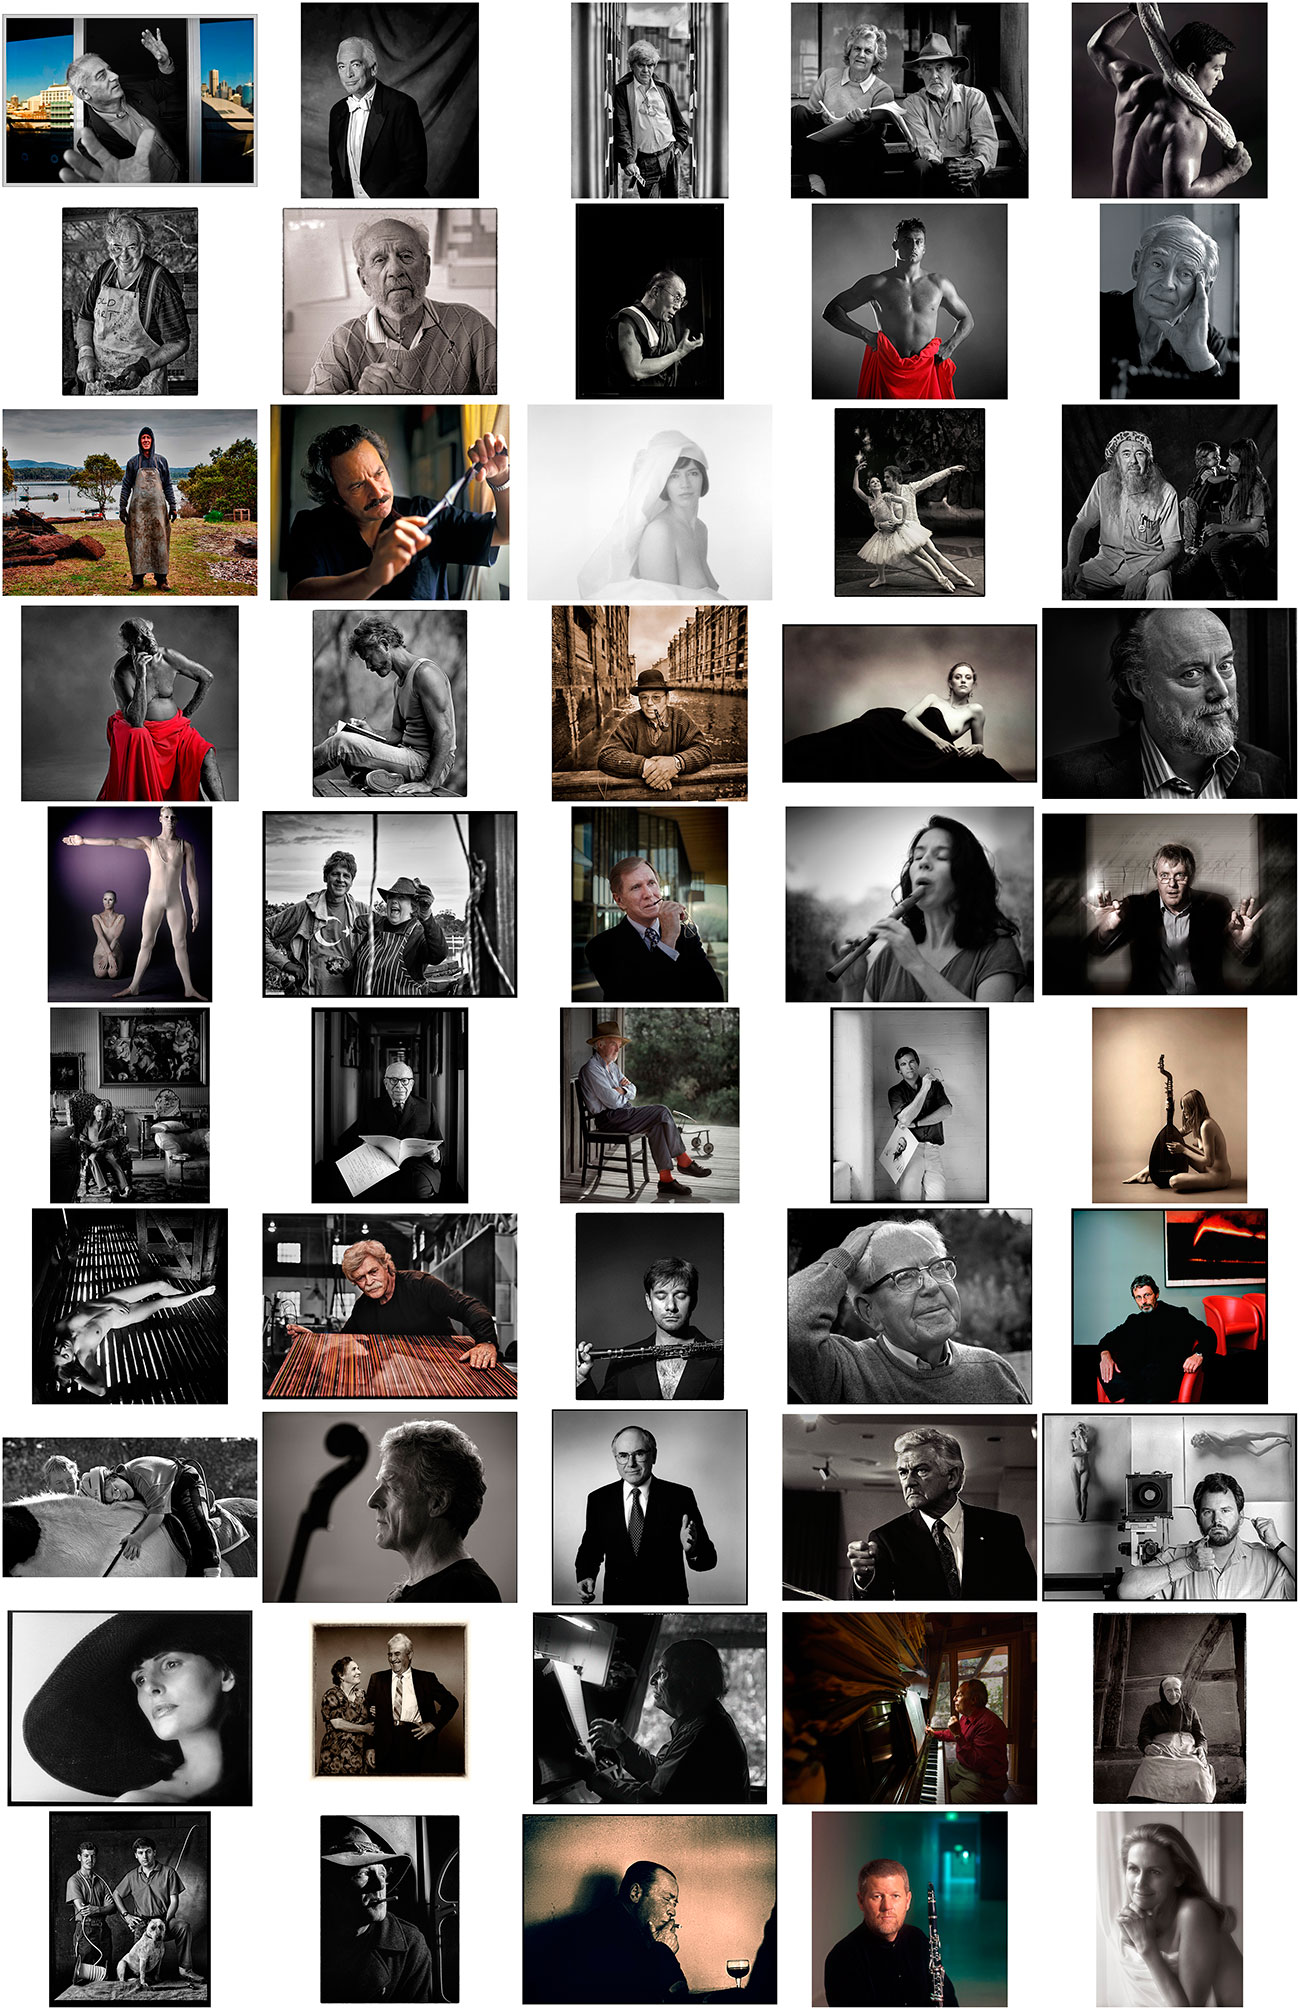 Contact sheet for Limited Edition Portrait Folio 1/3